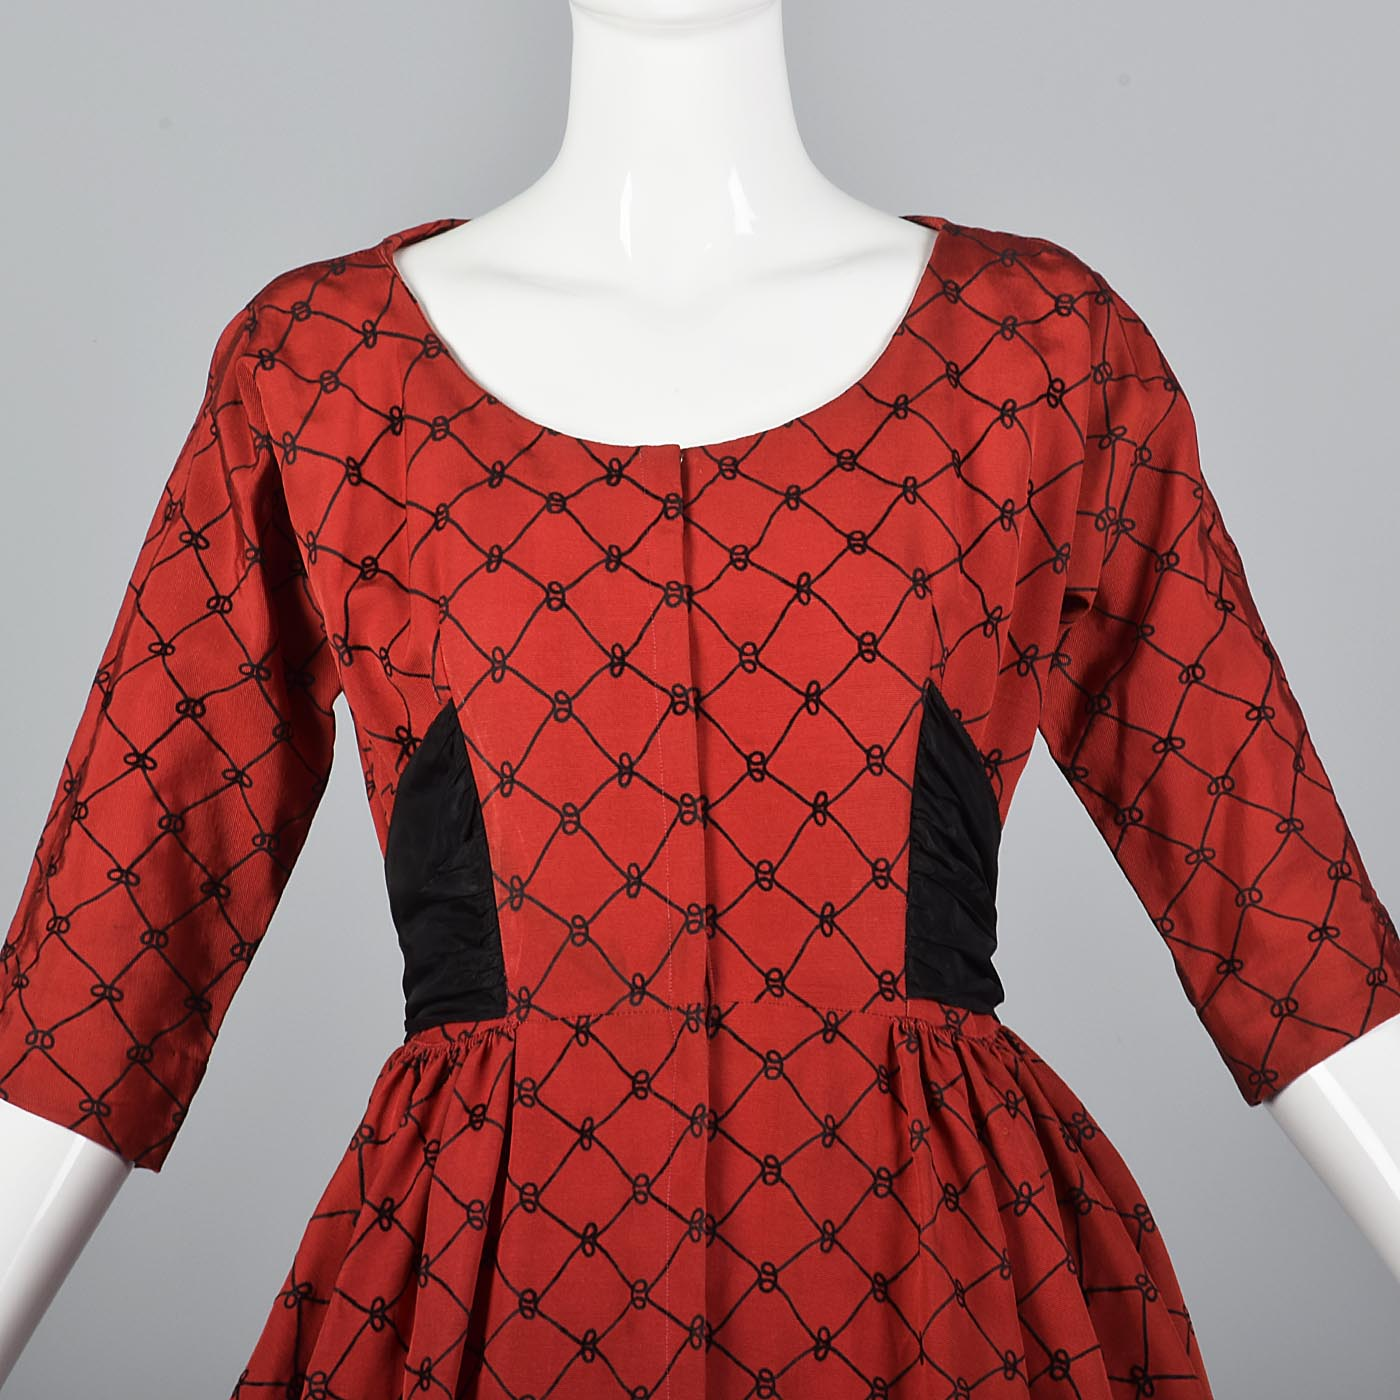 1950s Red Party Dress with Black Taffeta Bow